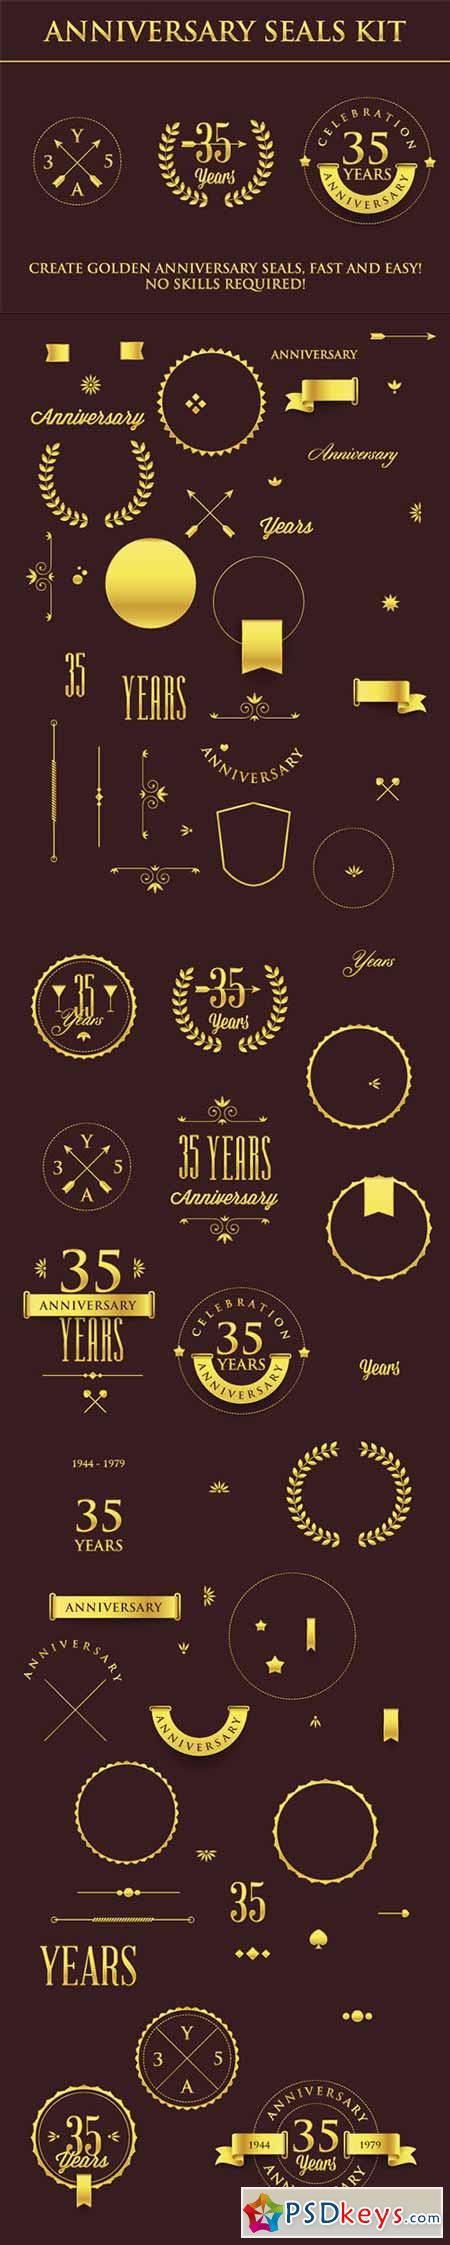 Designtnt - Anniversary Sign Collection